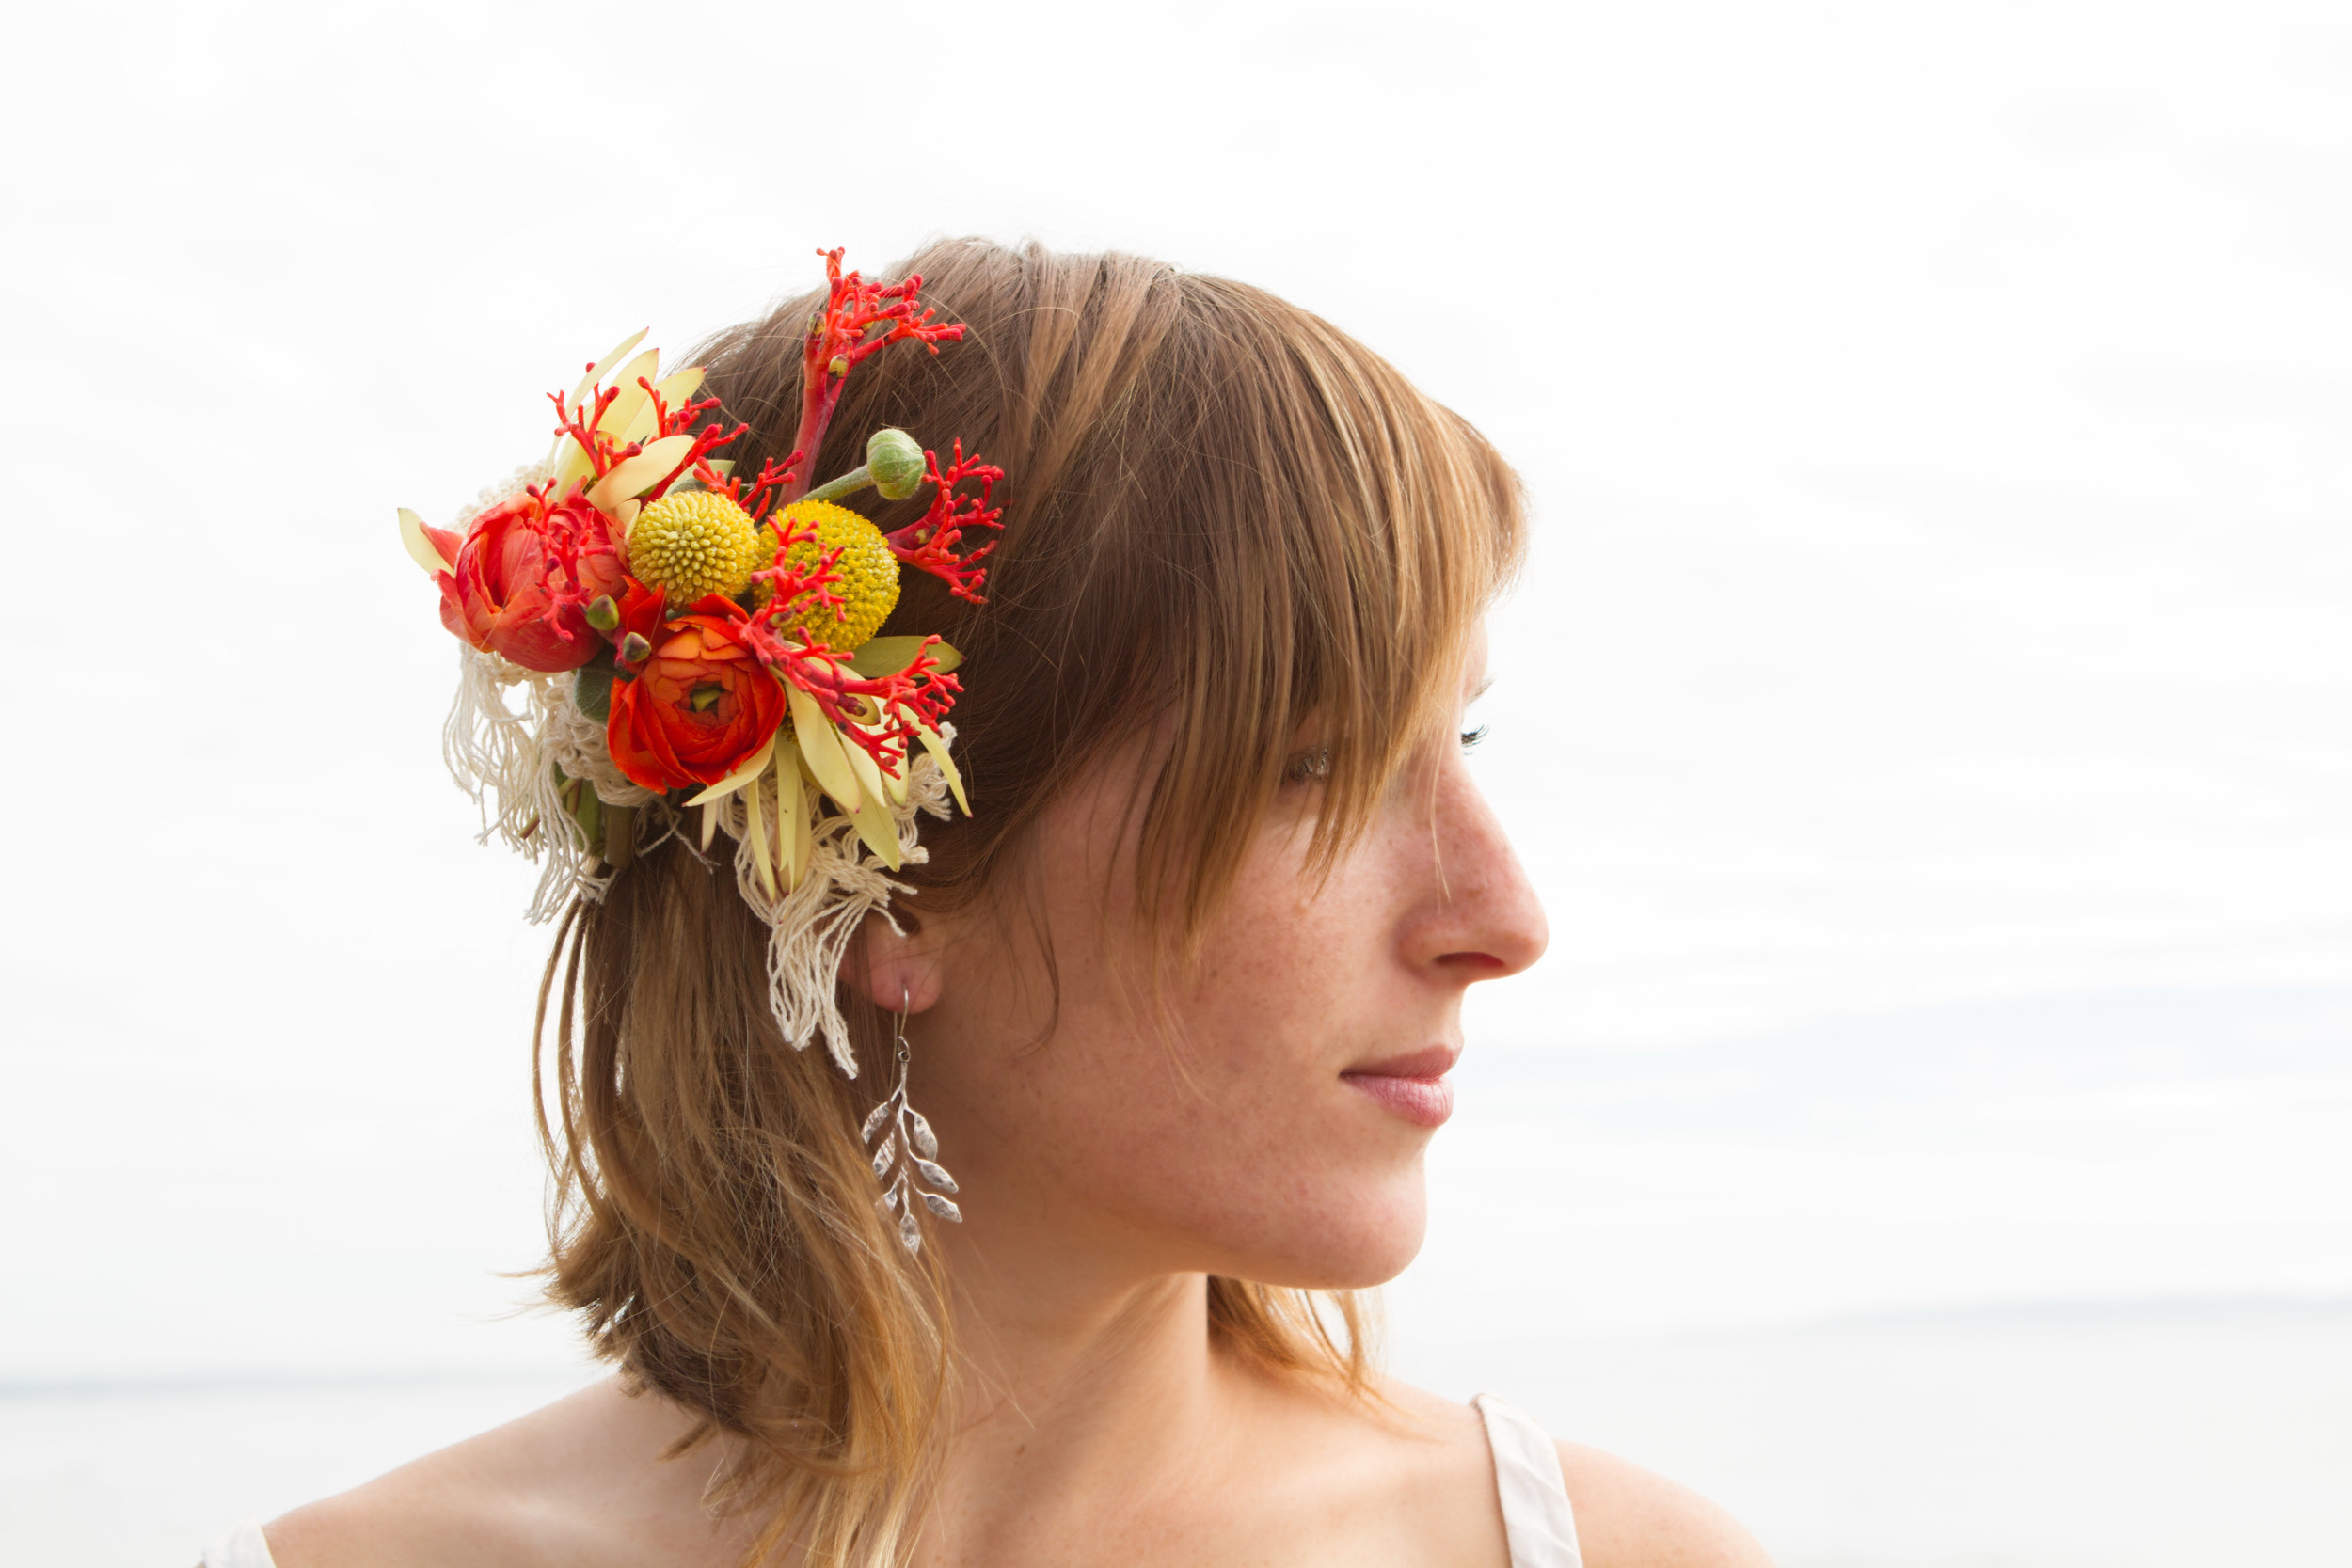 Faith Dickey modeling a floral hairpiece featuring orange ranunculus, coral flower and a few other choice picks. Photo: J.R. Racine.